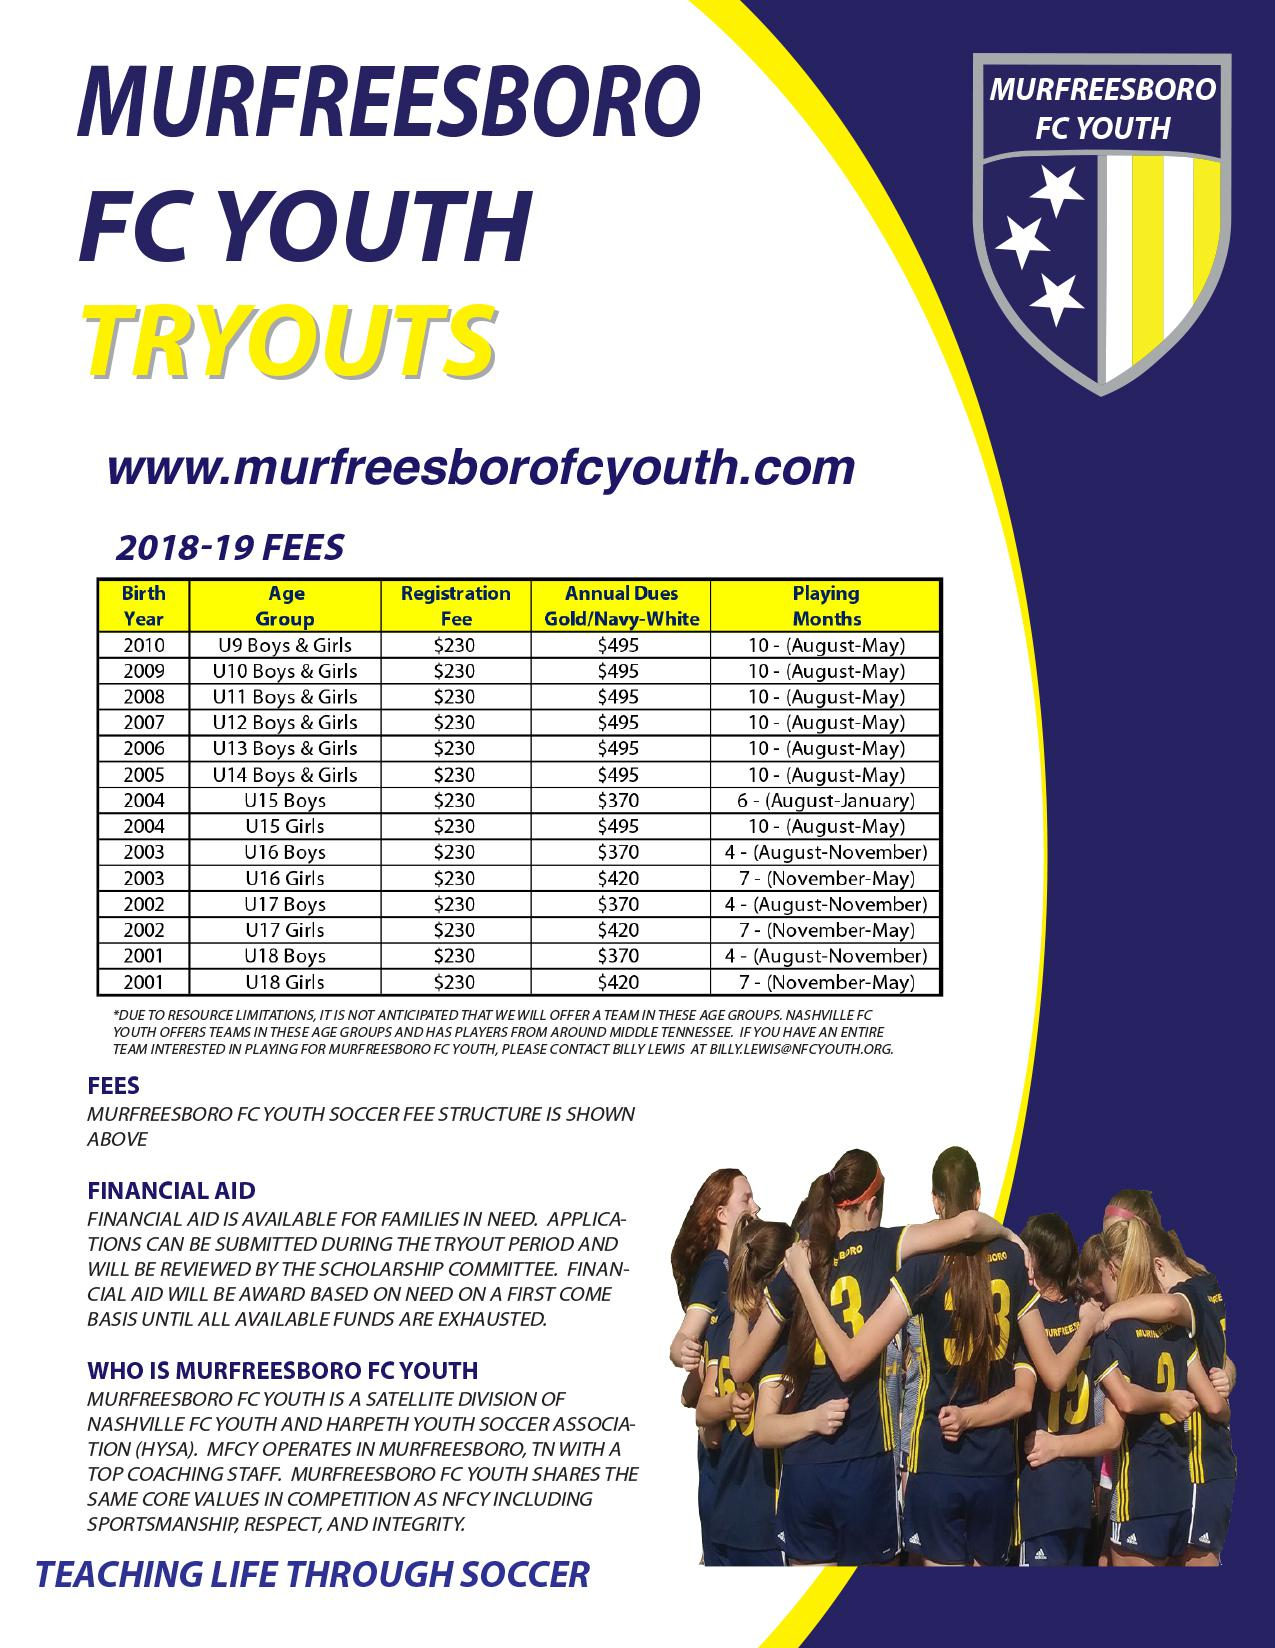 Murfreesboro FC Youth Tryouts